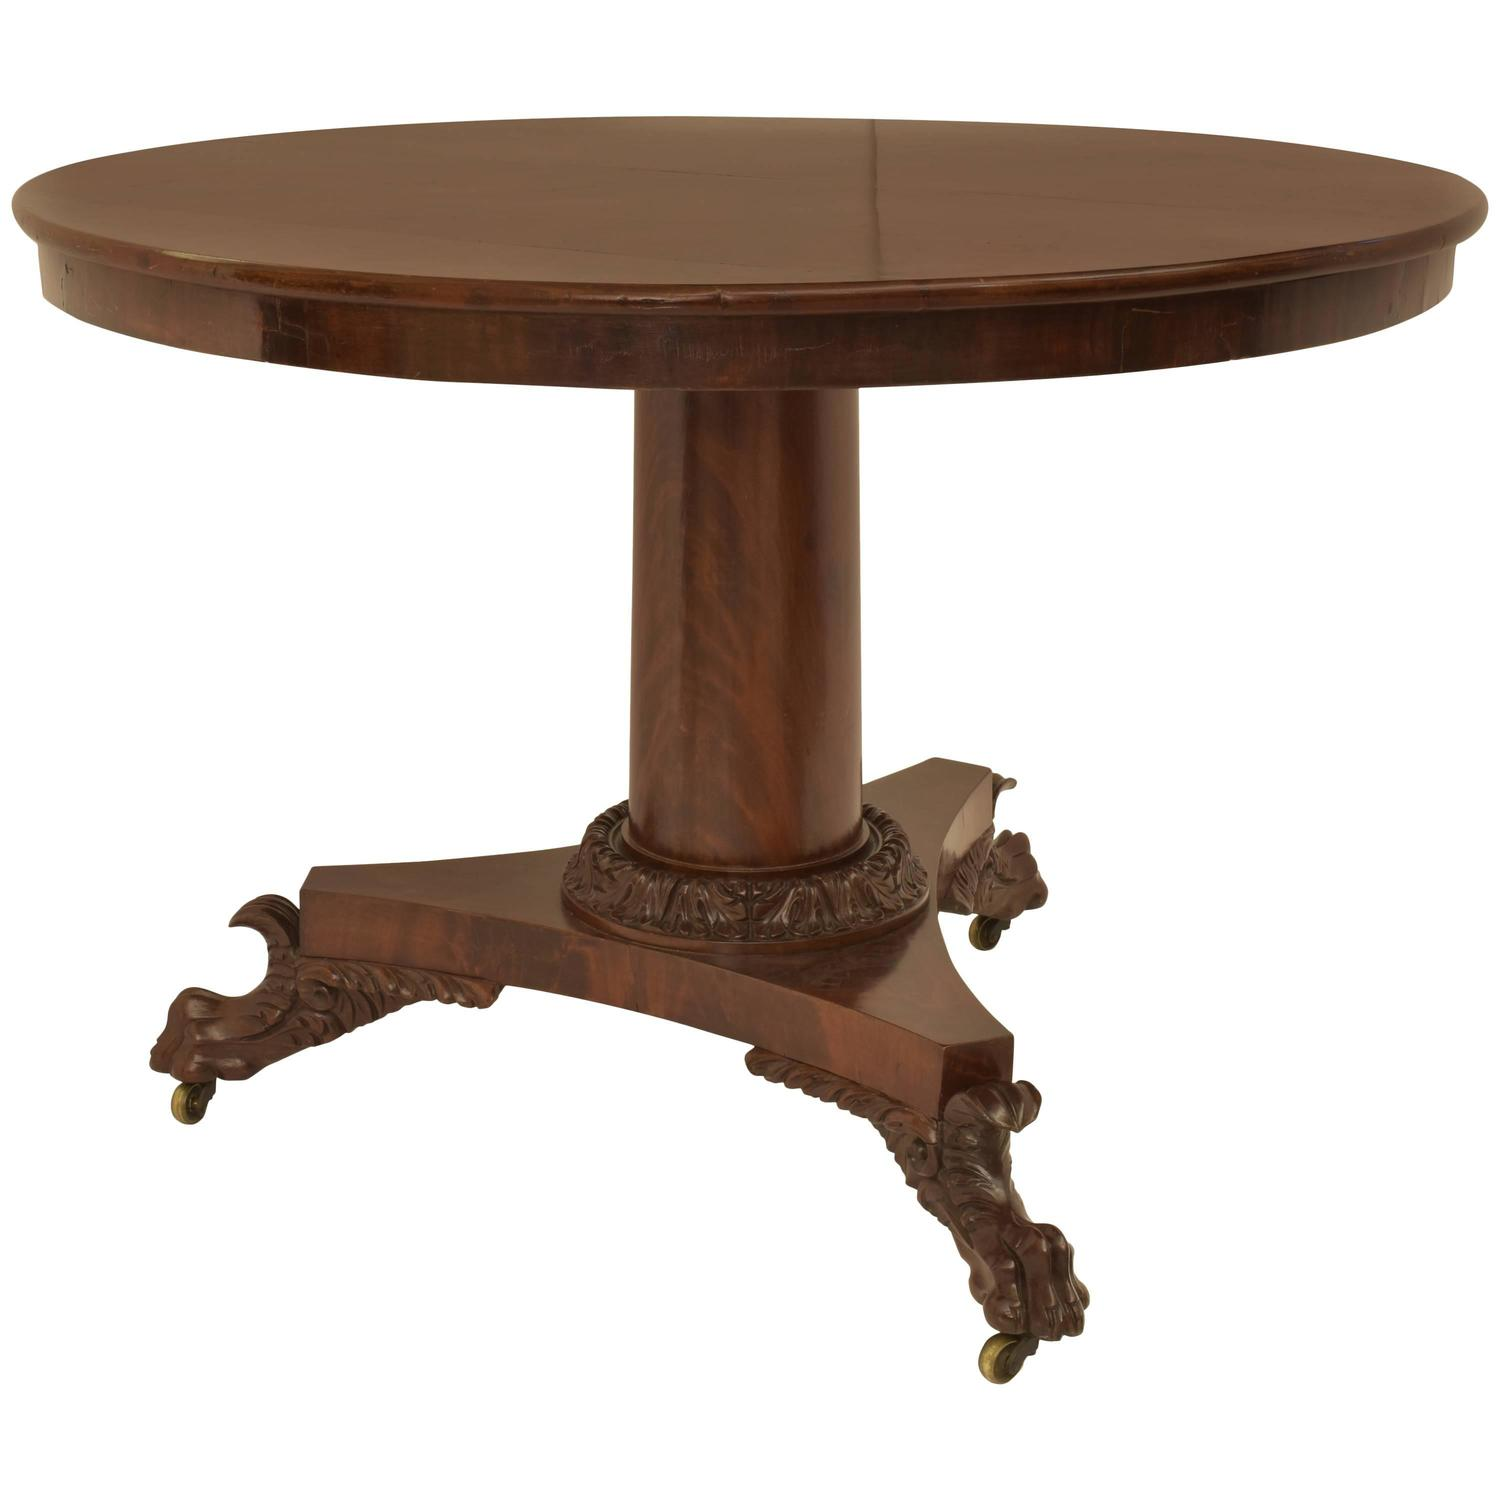 Round mahogany center table 19th century for sale at 1stdibs for Table th center text